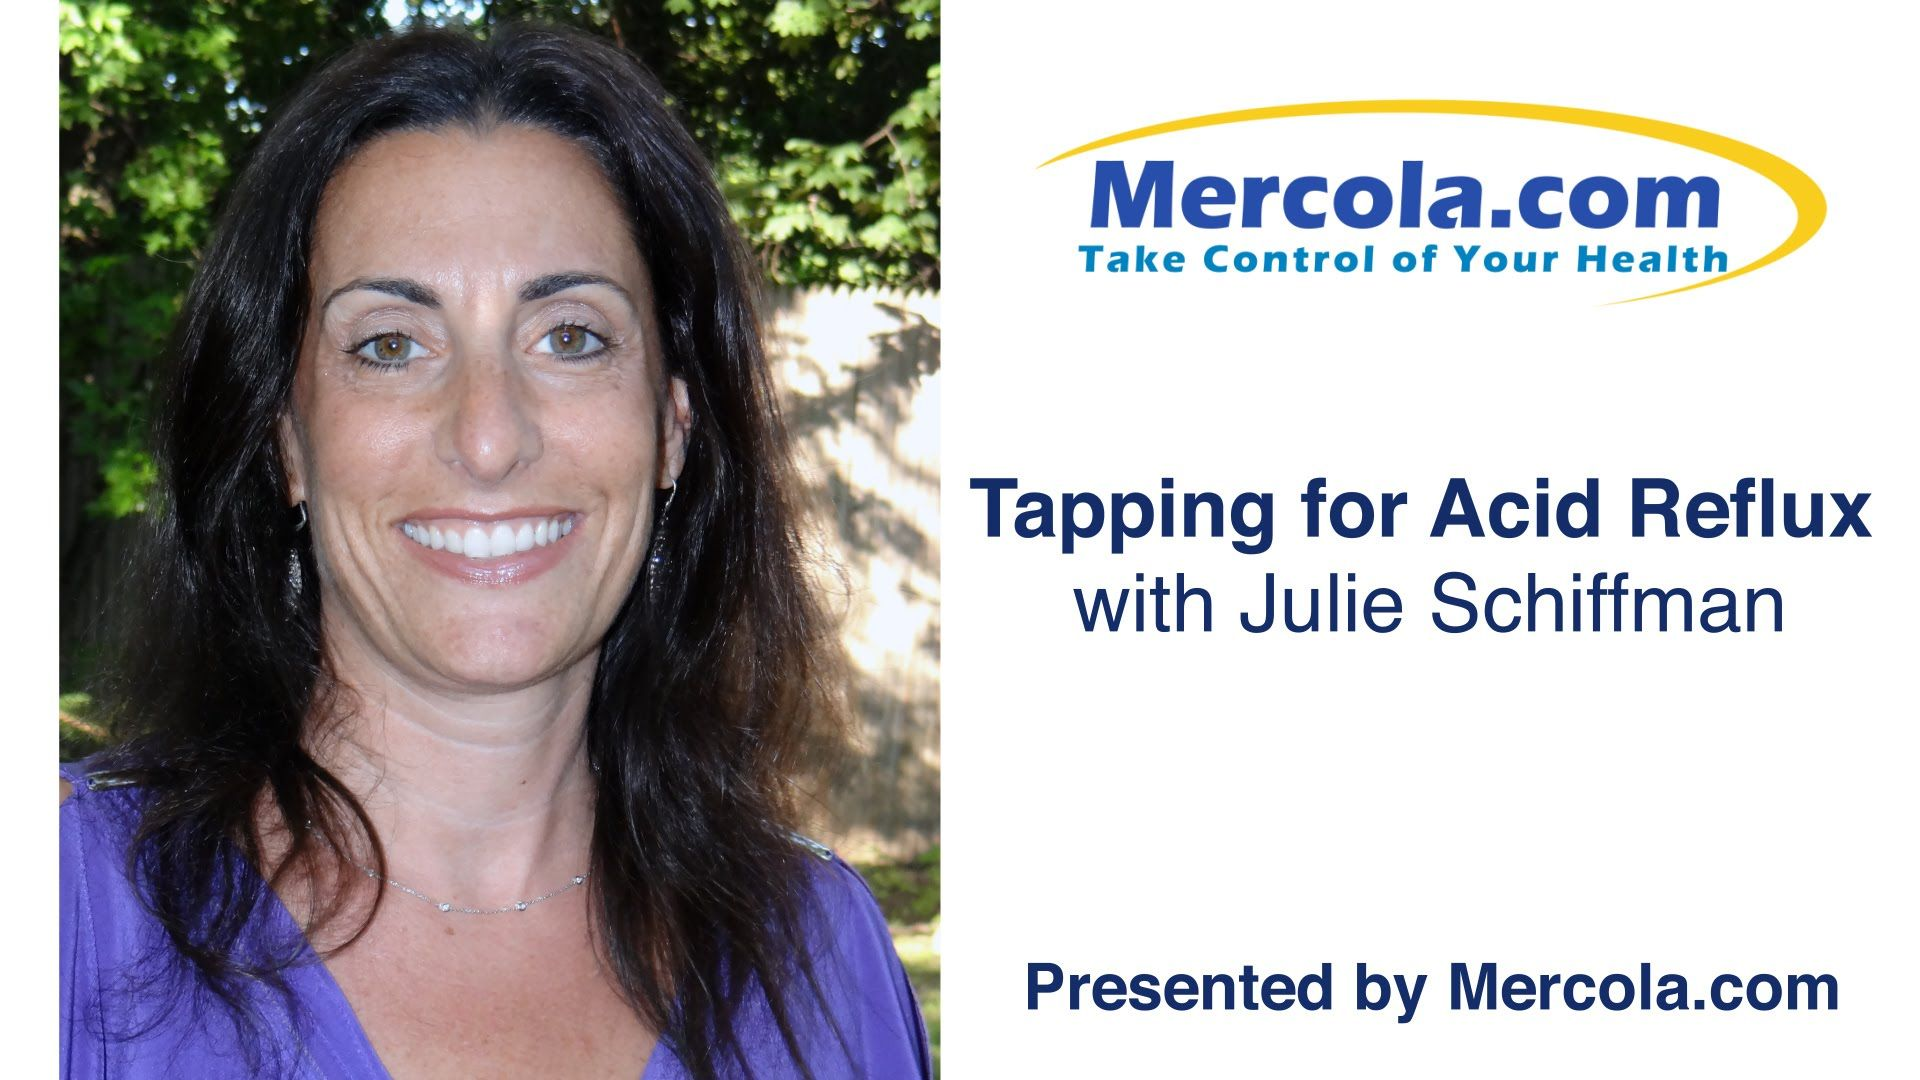 Tapping for Acid Reflux with Julie Schiffman